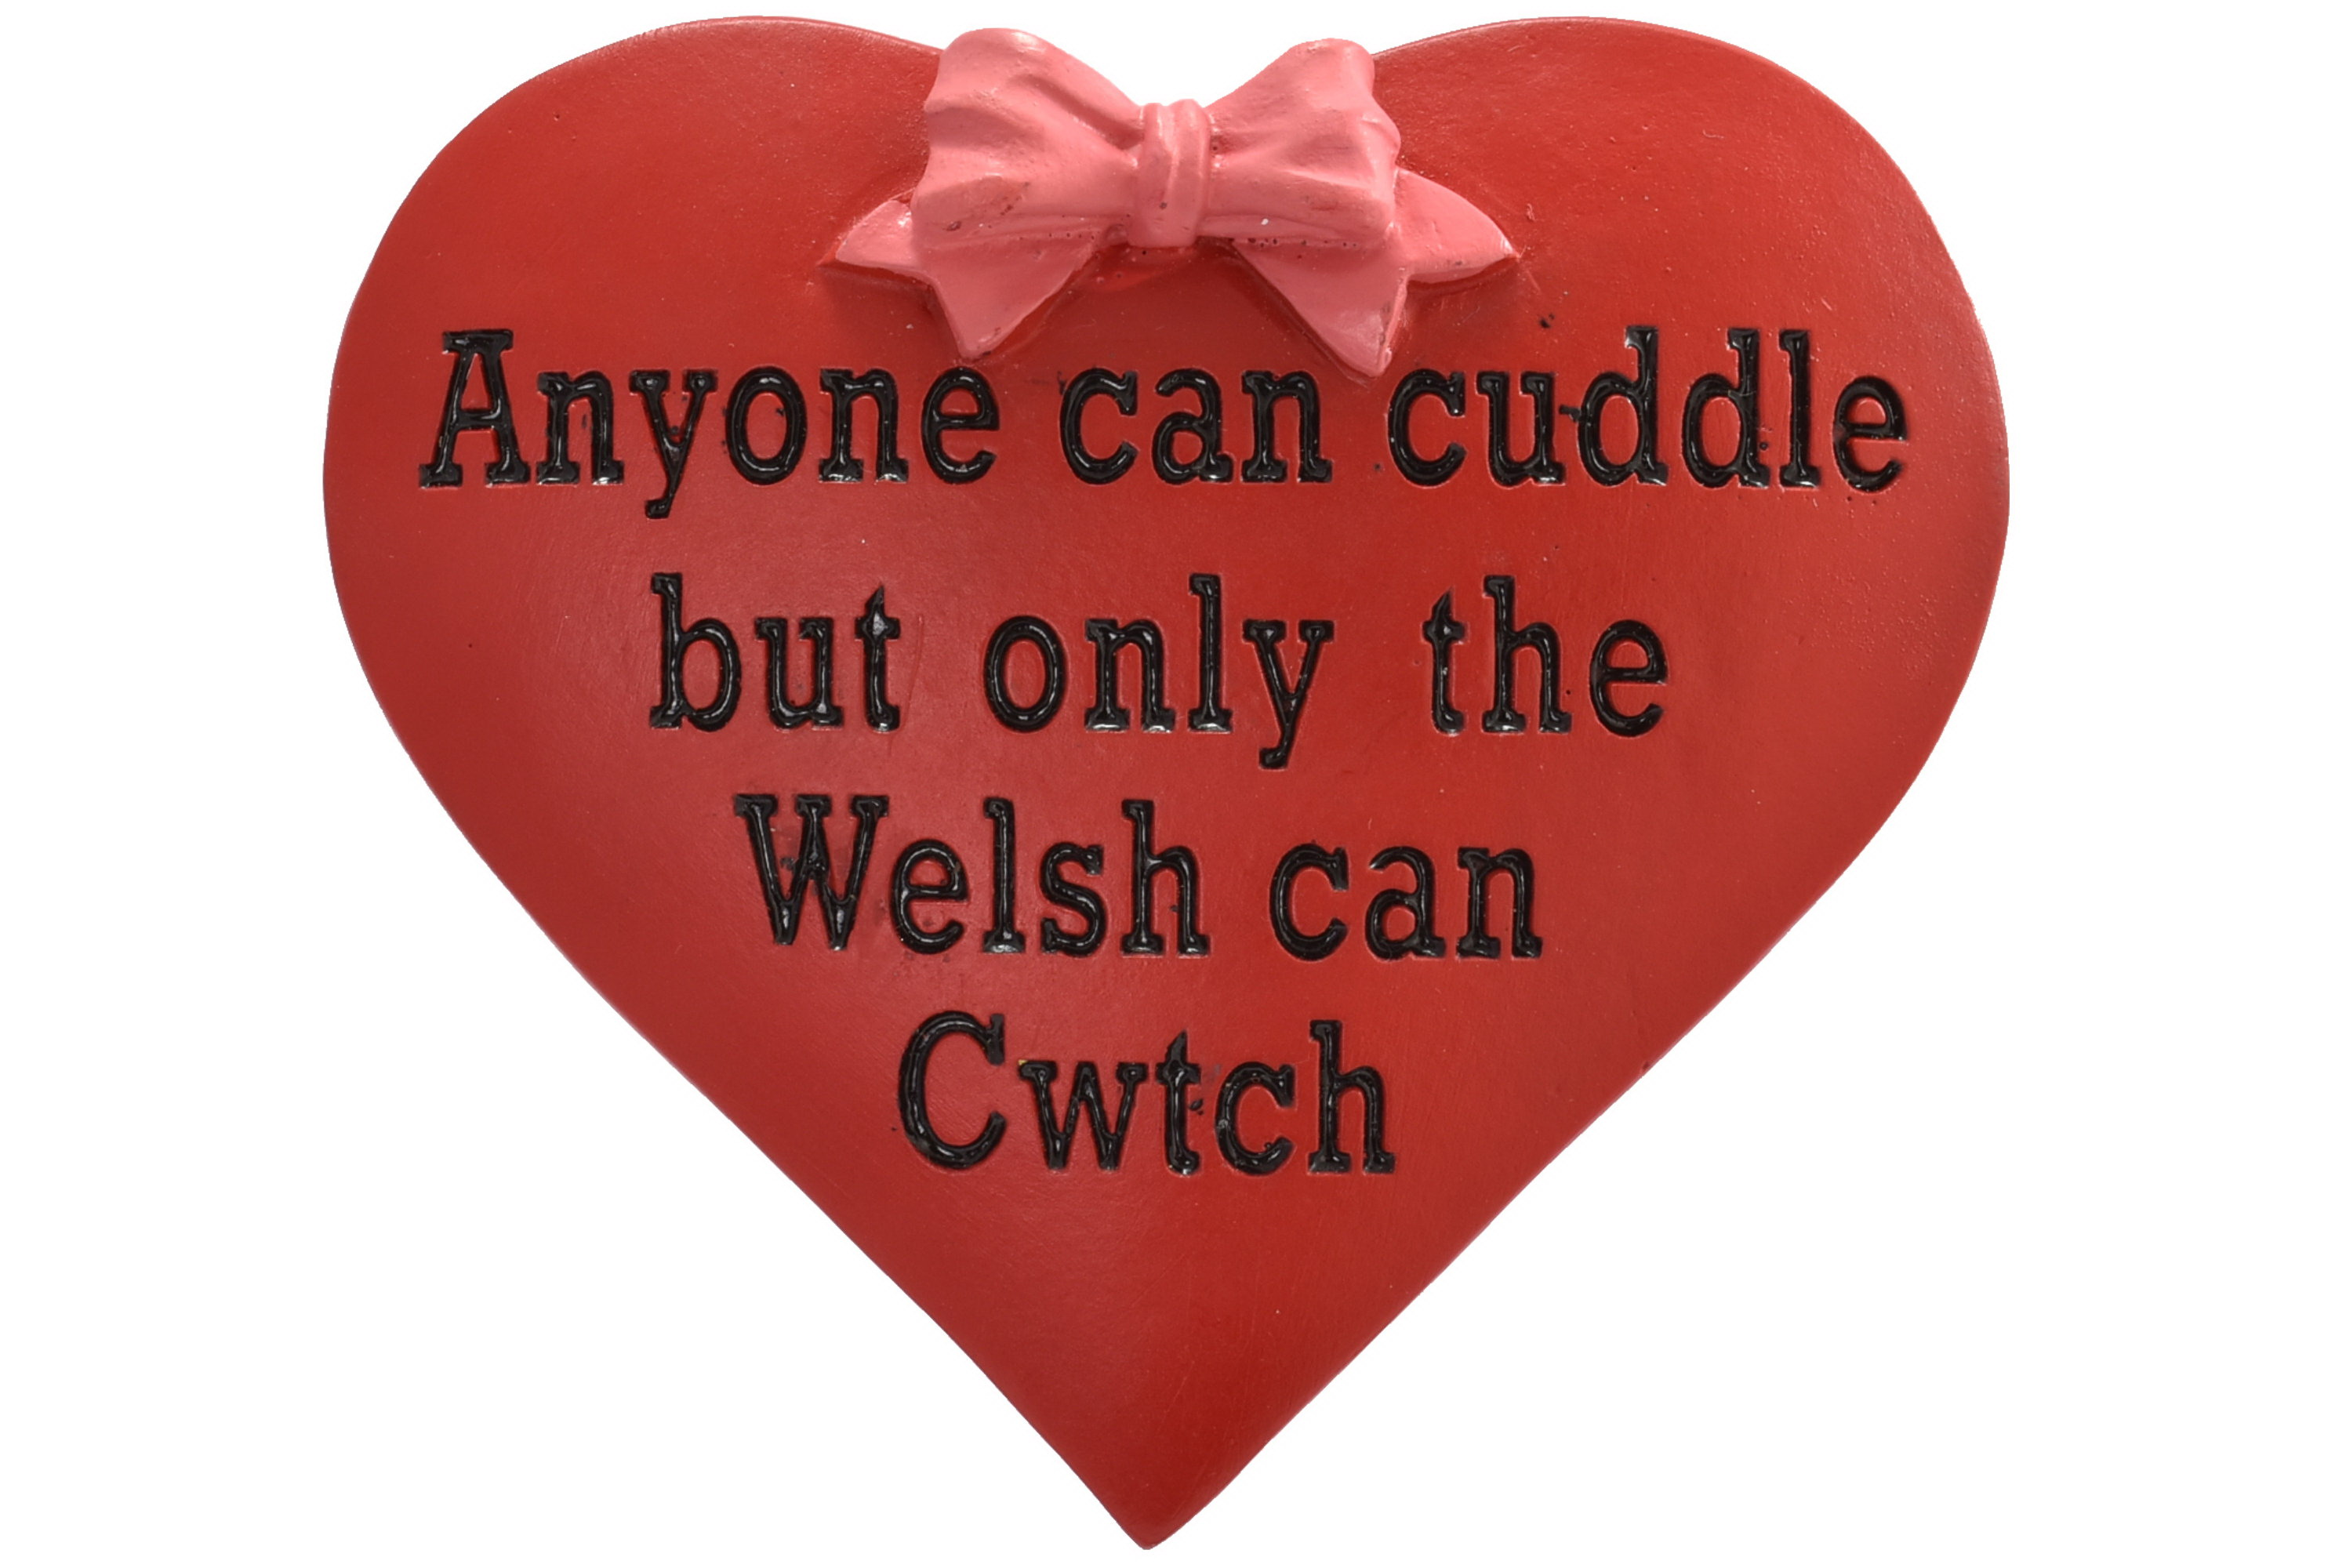 Wales Cwtch Heart Resin Magnet